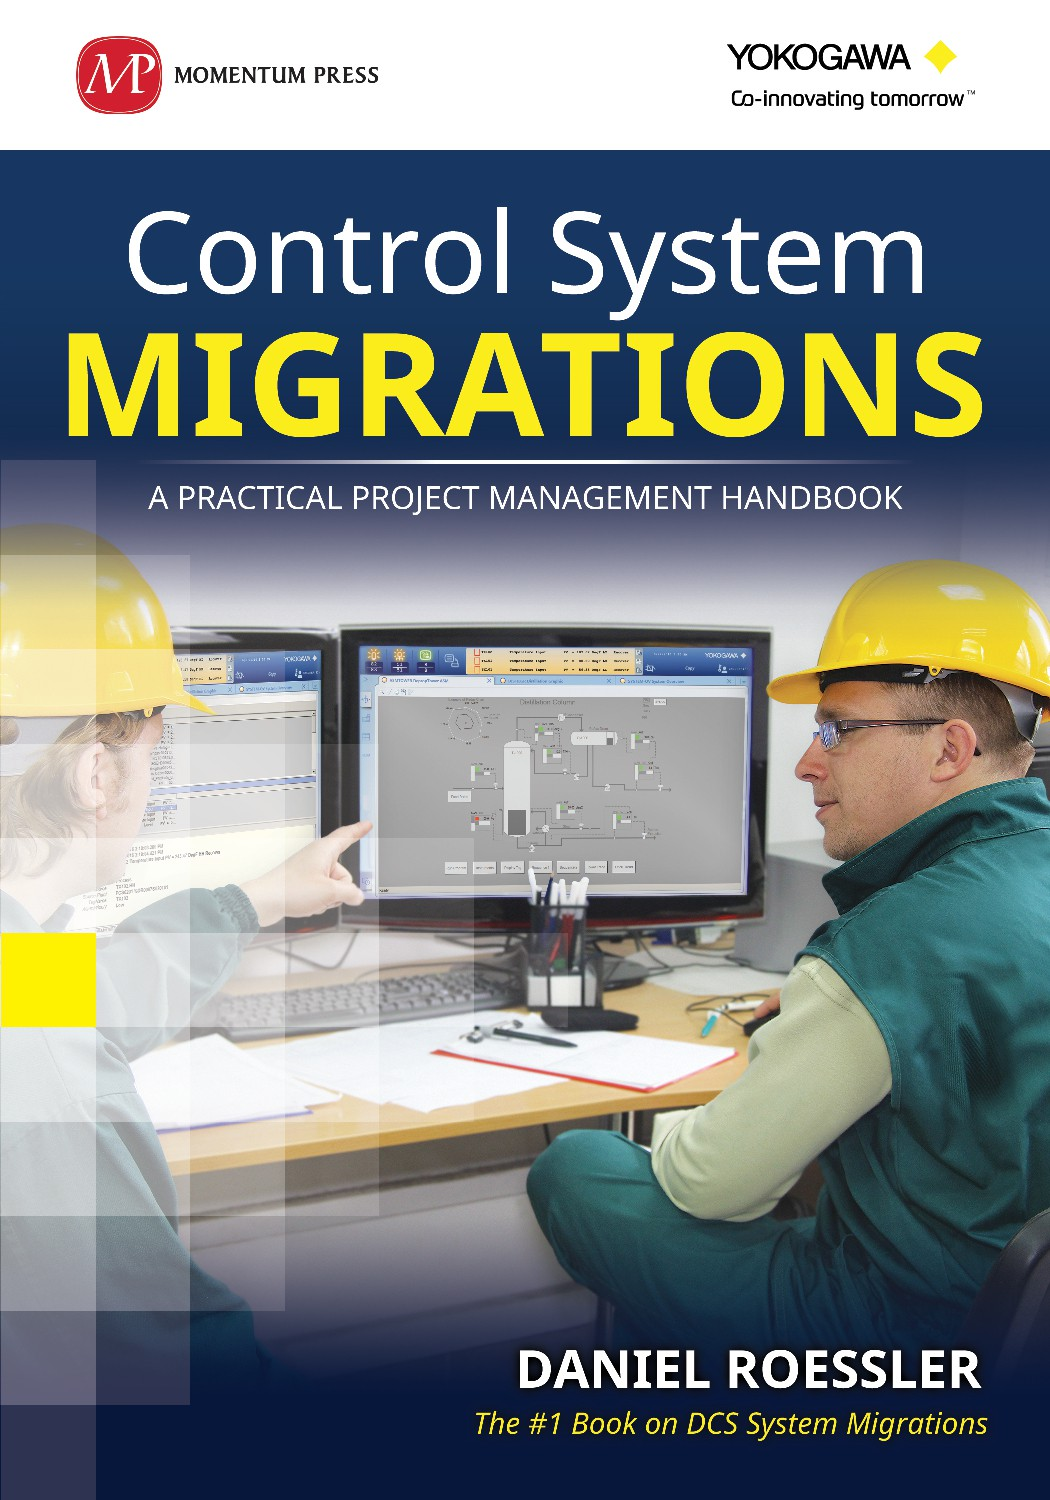 Control System Migration ebook cover needed for a large multi-national corporation.